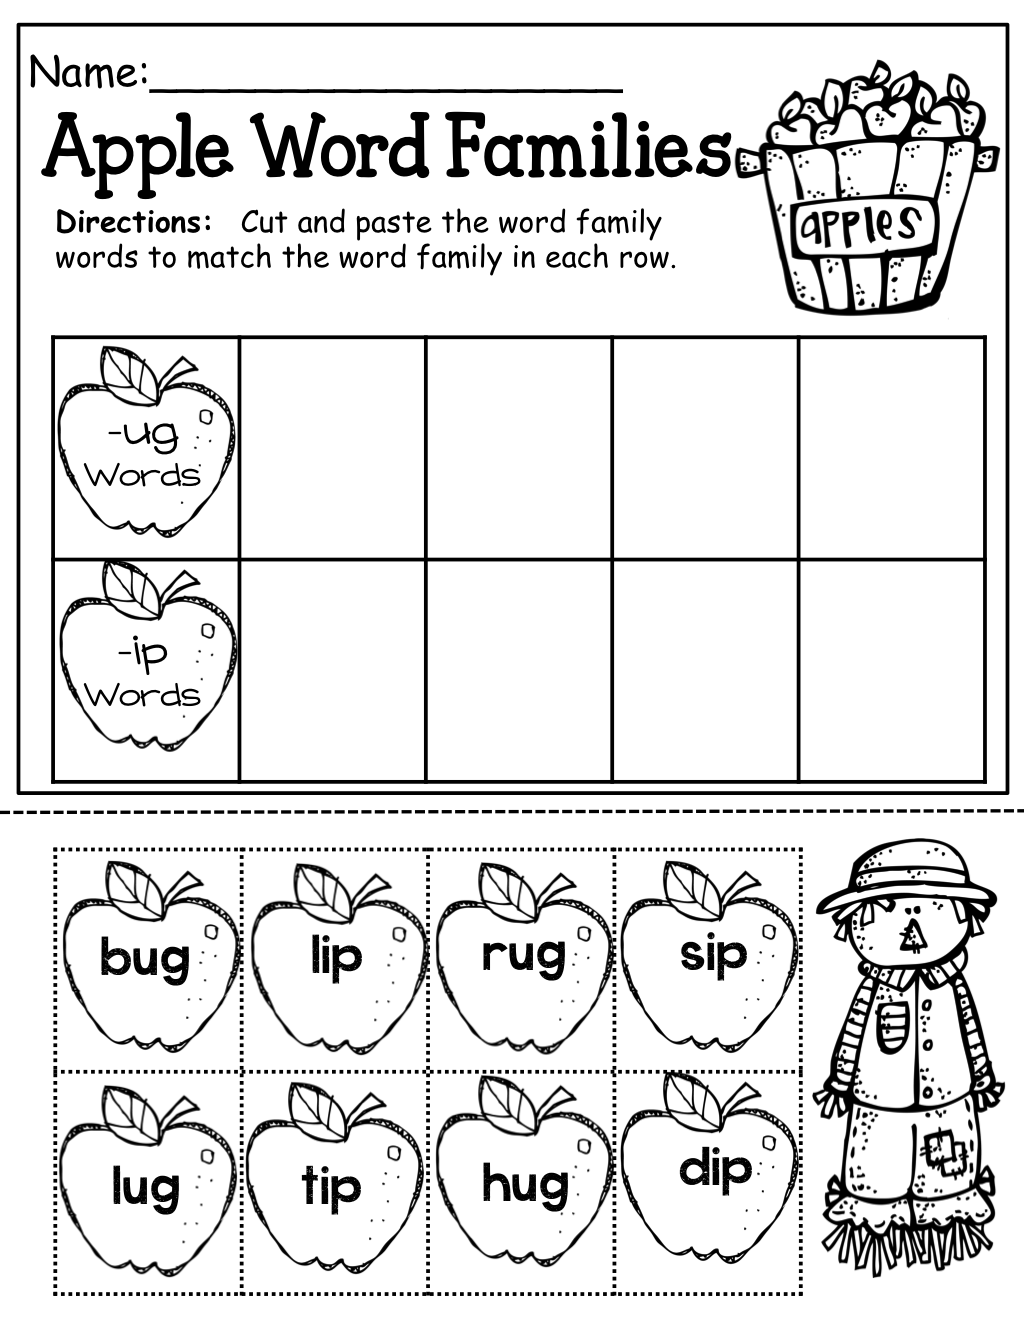 Apple Word Families with simple CVC words! | Word Work | Pinterest ...